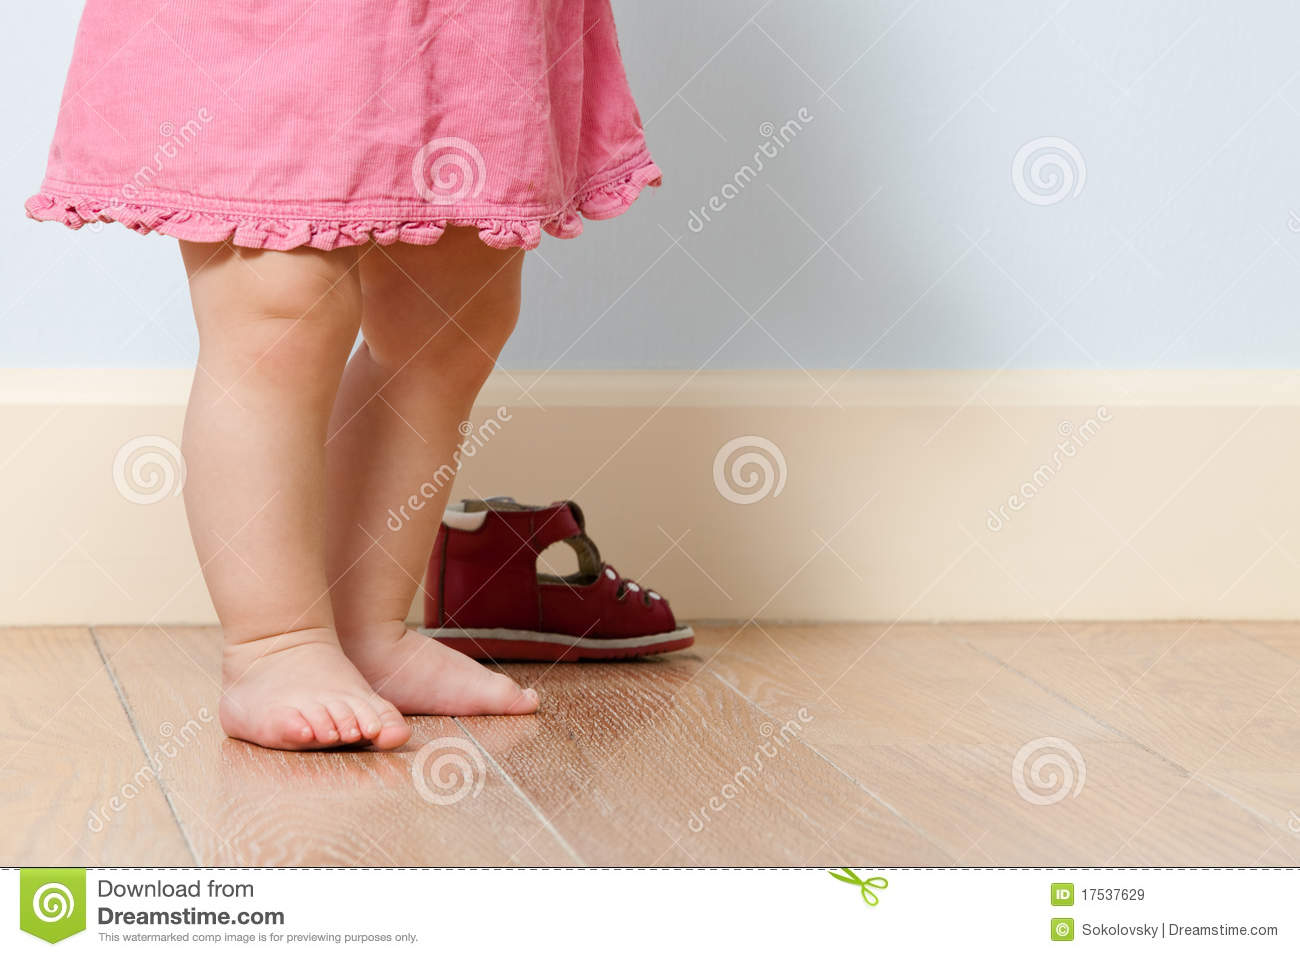 Cute Baby Legs In Room Royalty Free Stock Images - Image: 17537629